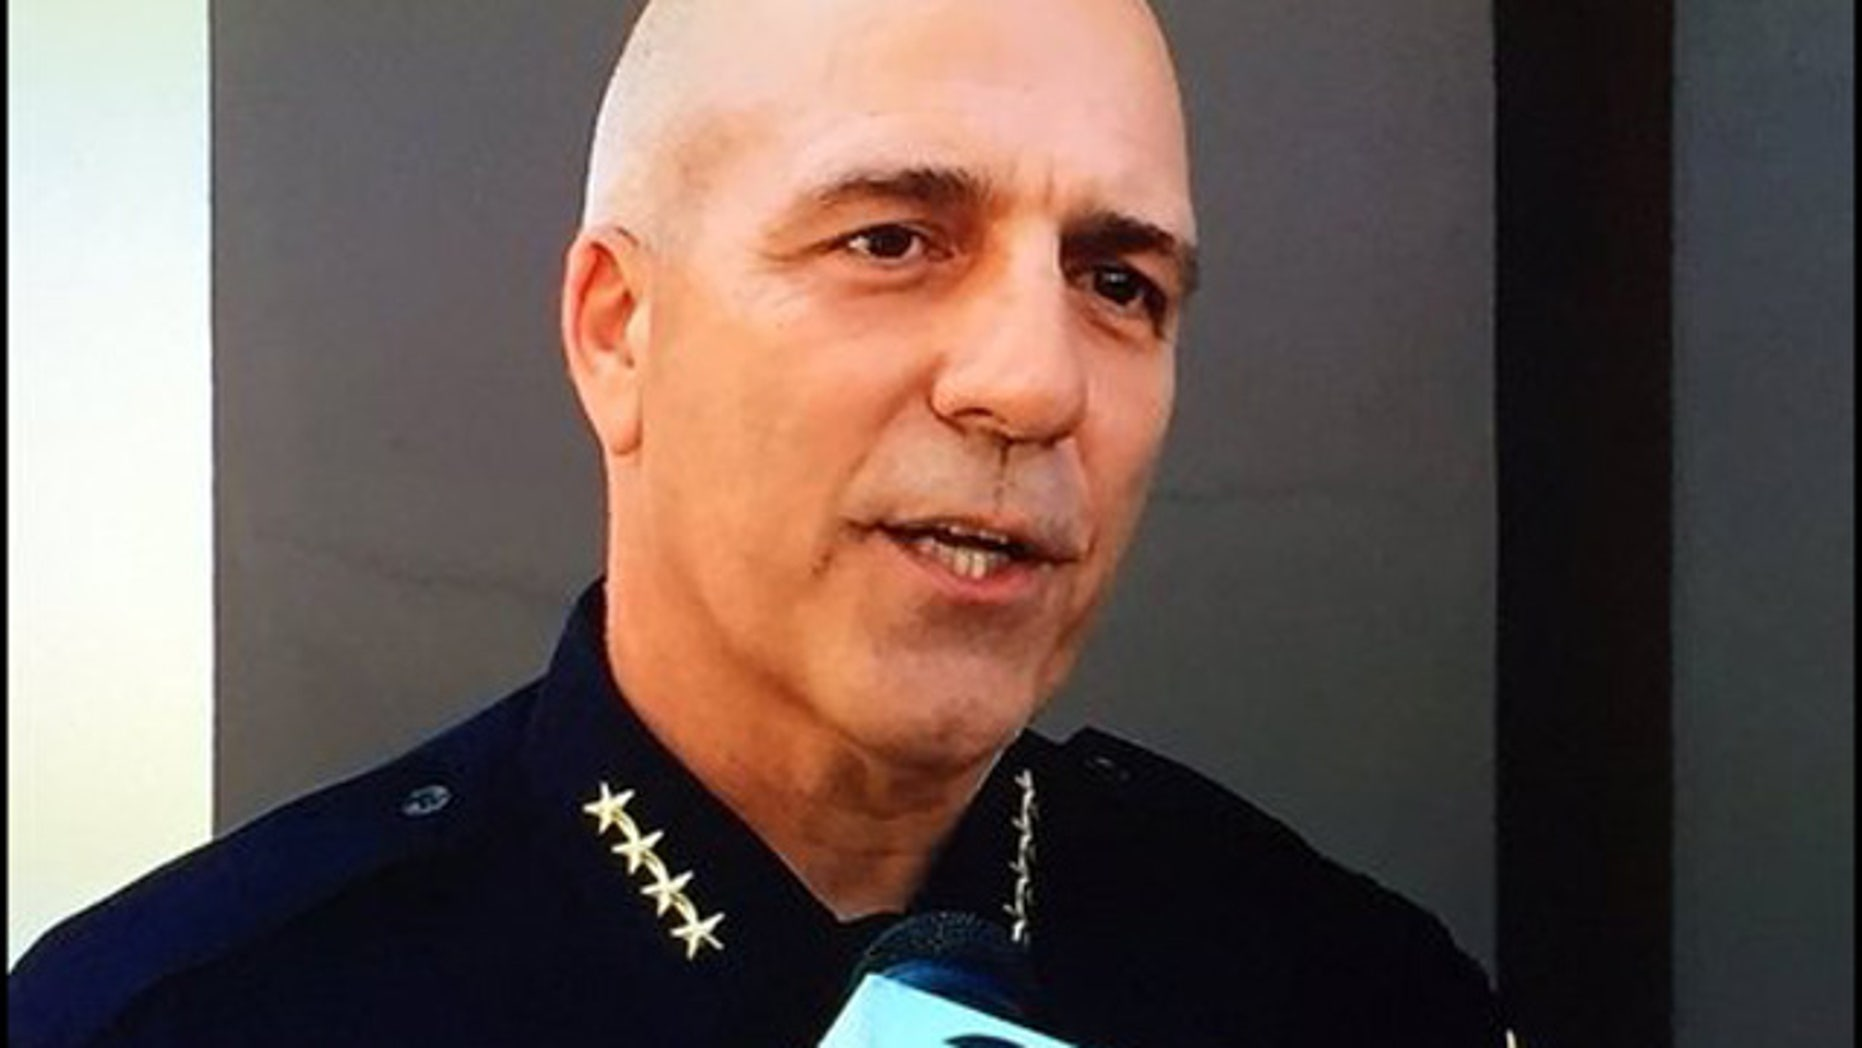 This undated image shows former acting Oakland Police Chief Ben Fairow, who was removed from his post Wednesday by Oakland Mayor Libby Schaaf